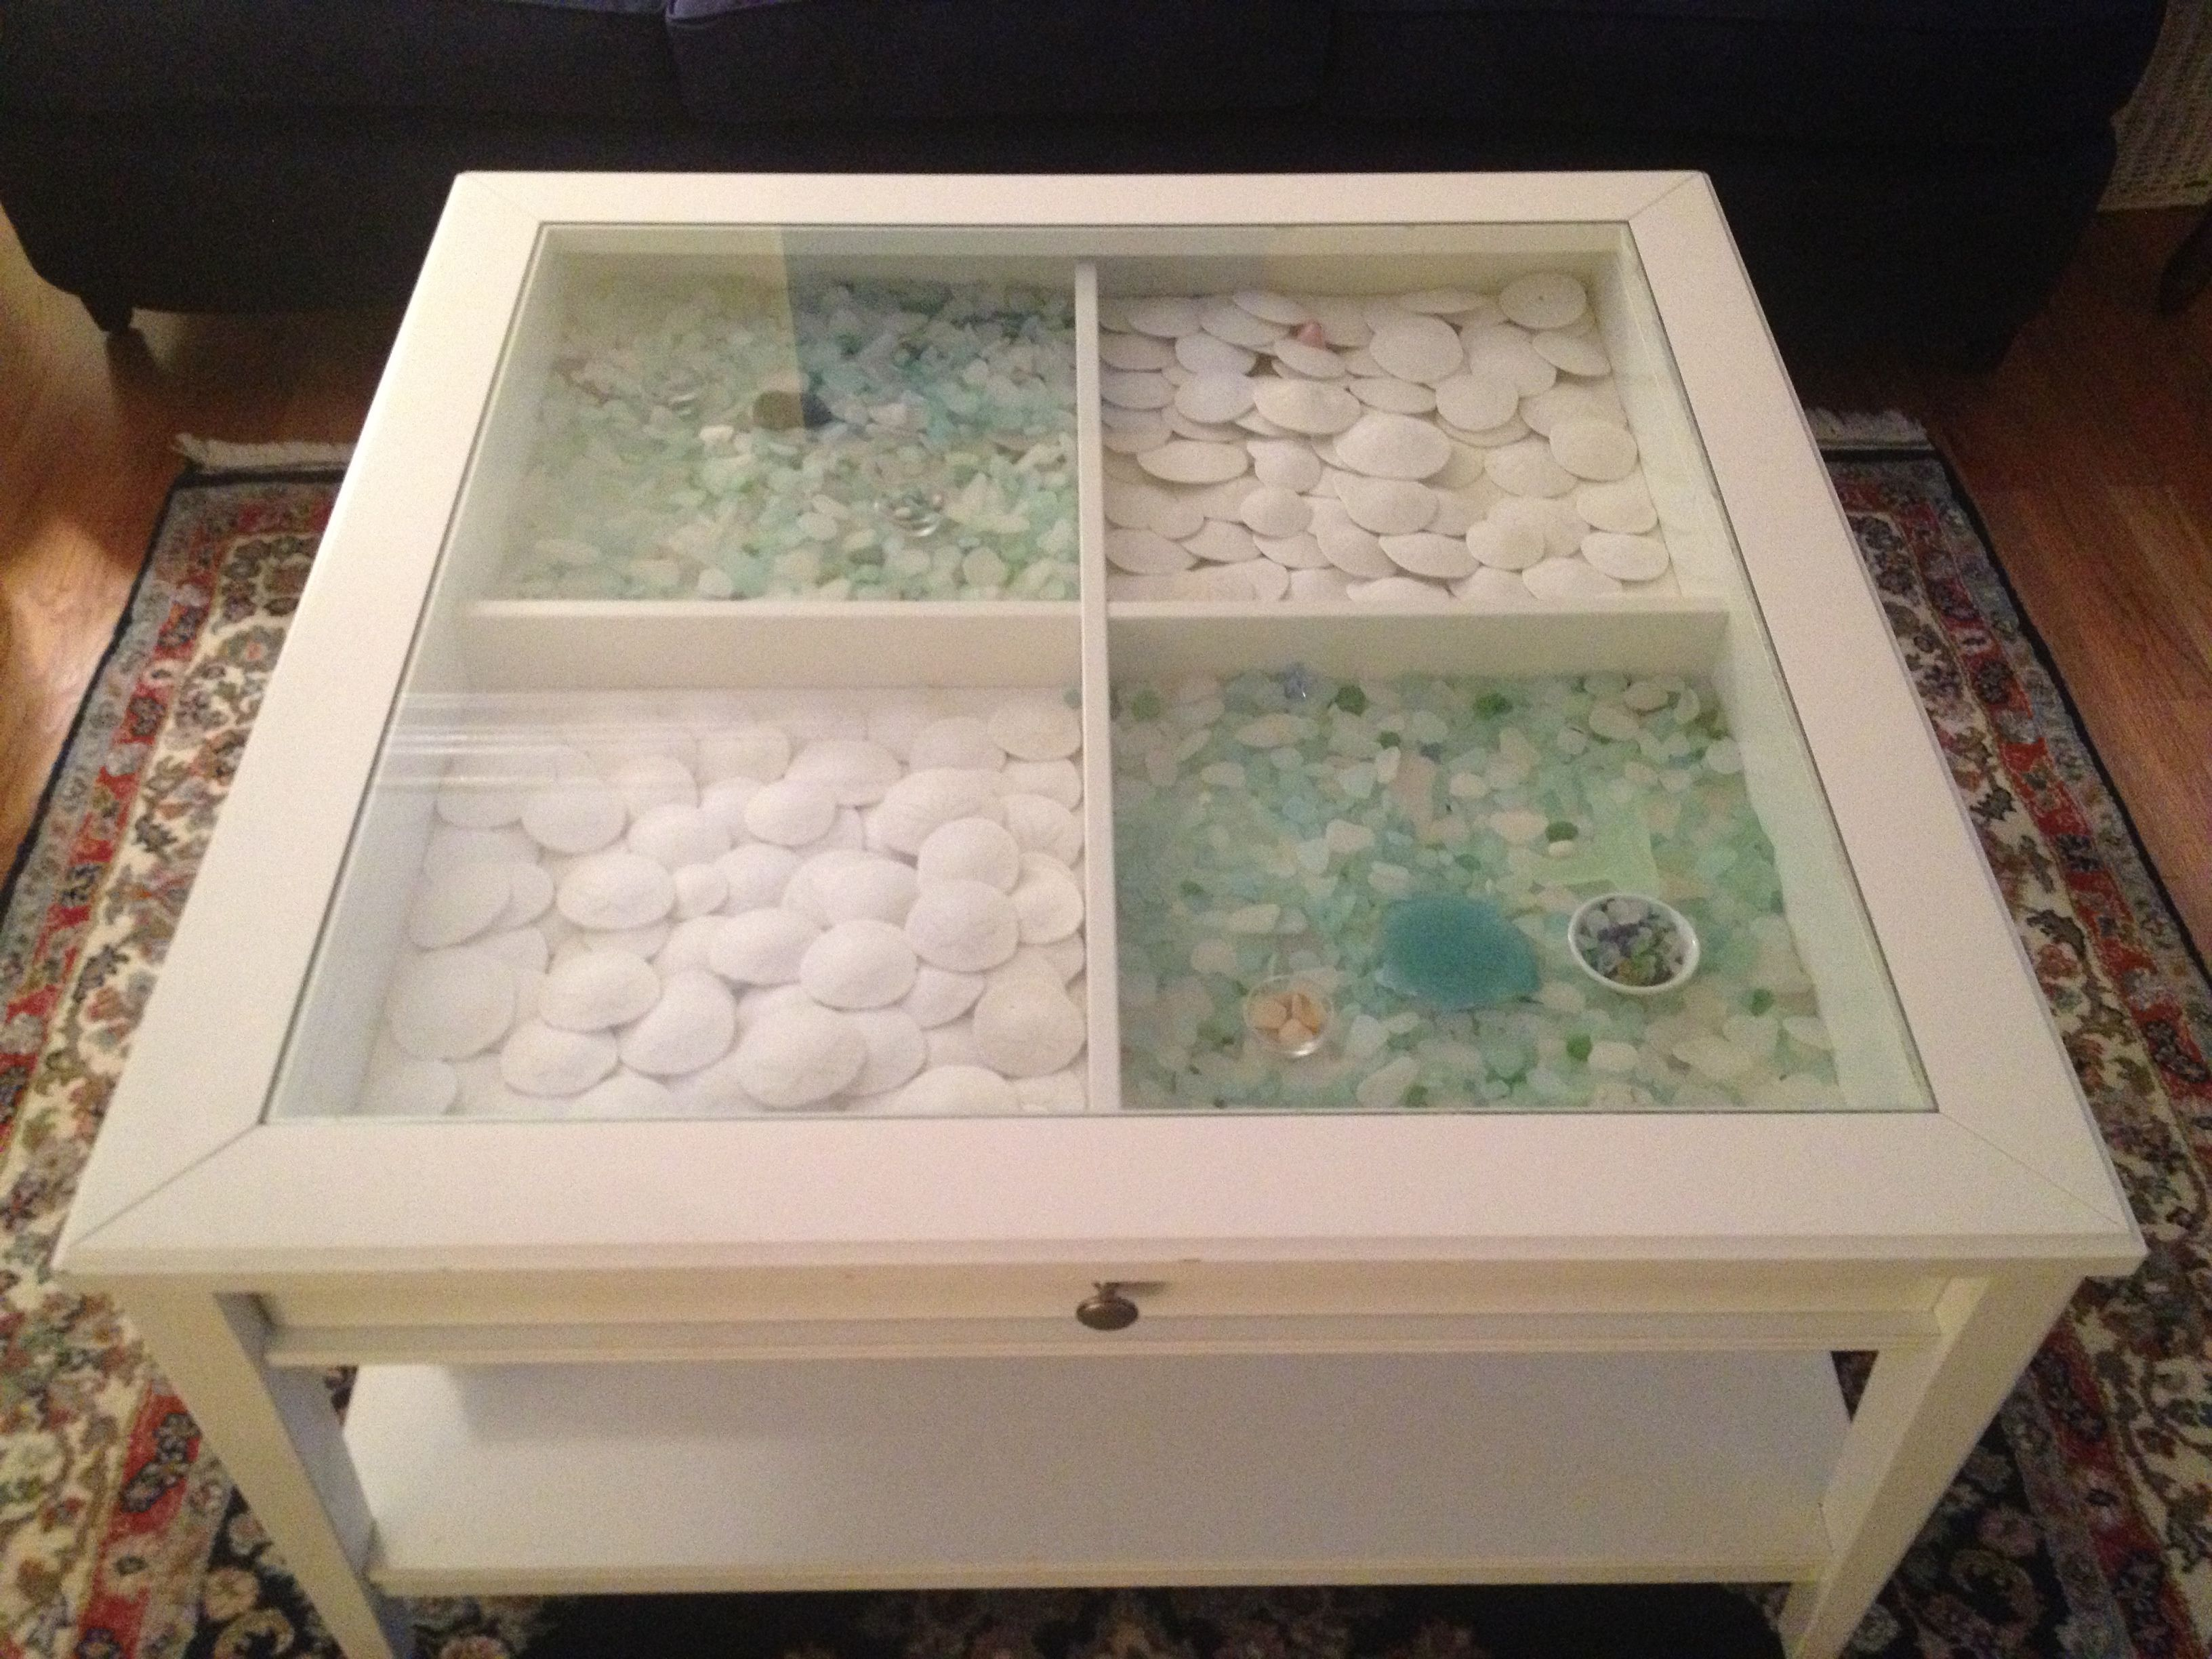 Sea glass & sand dollars displayed in a glass top coffee table